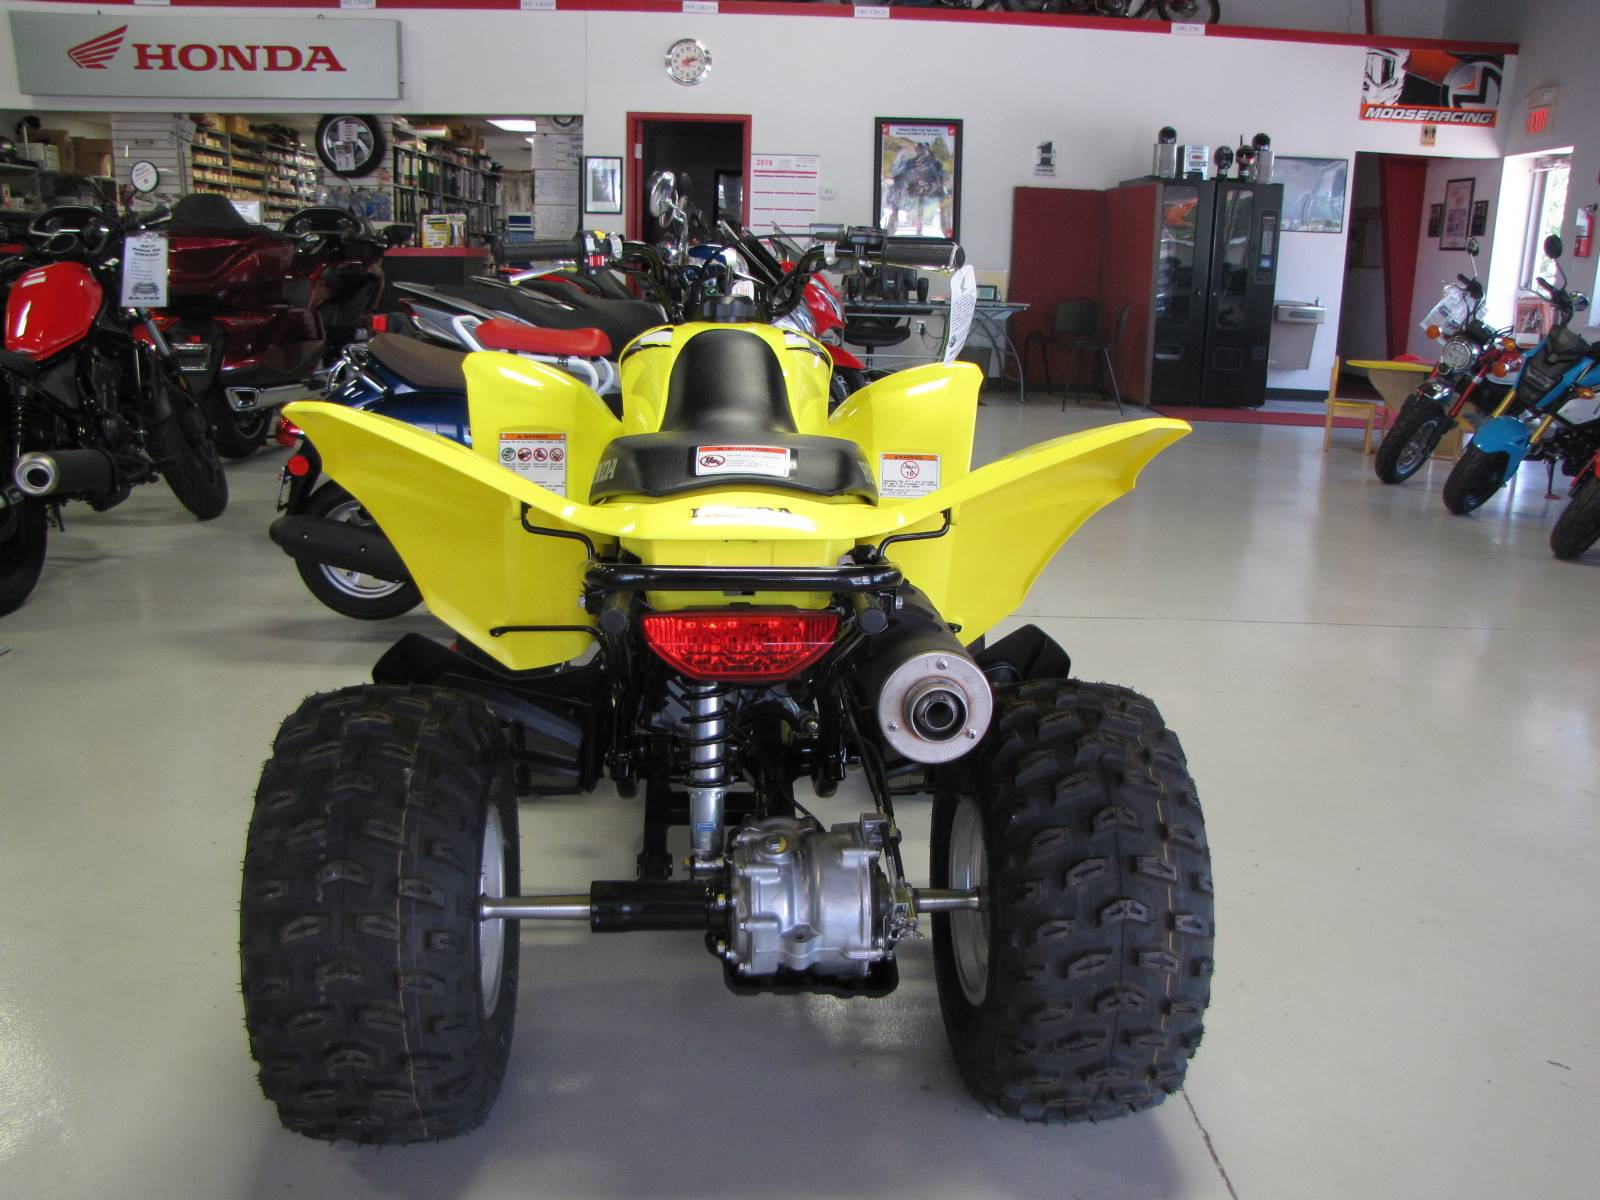 2018 Honda TRX250X in Ottawa, Ohio - Photo 4